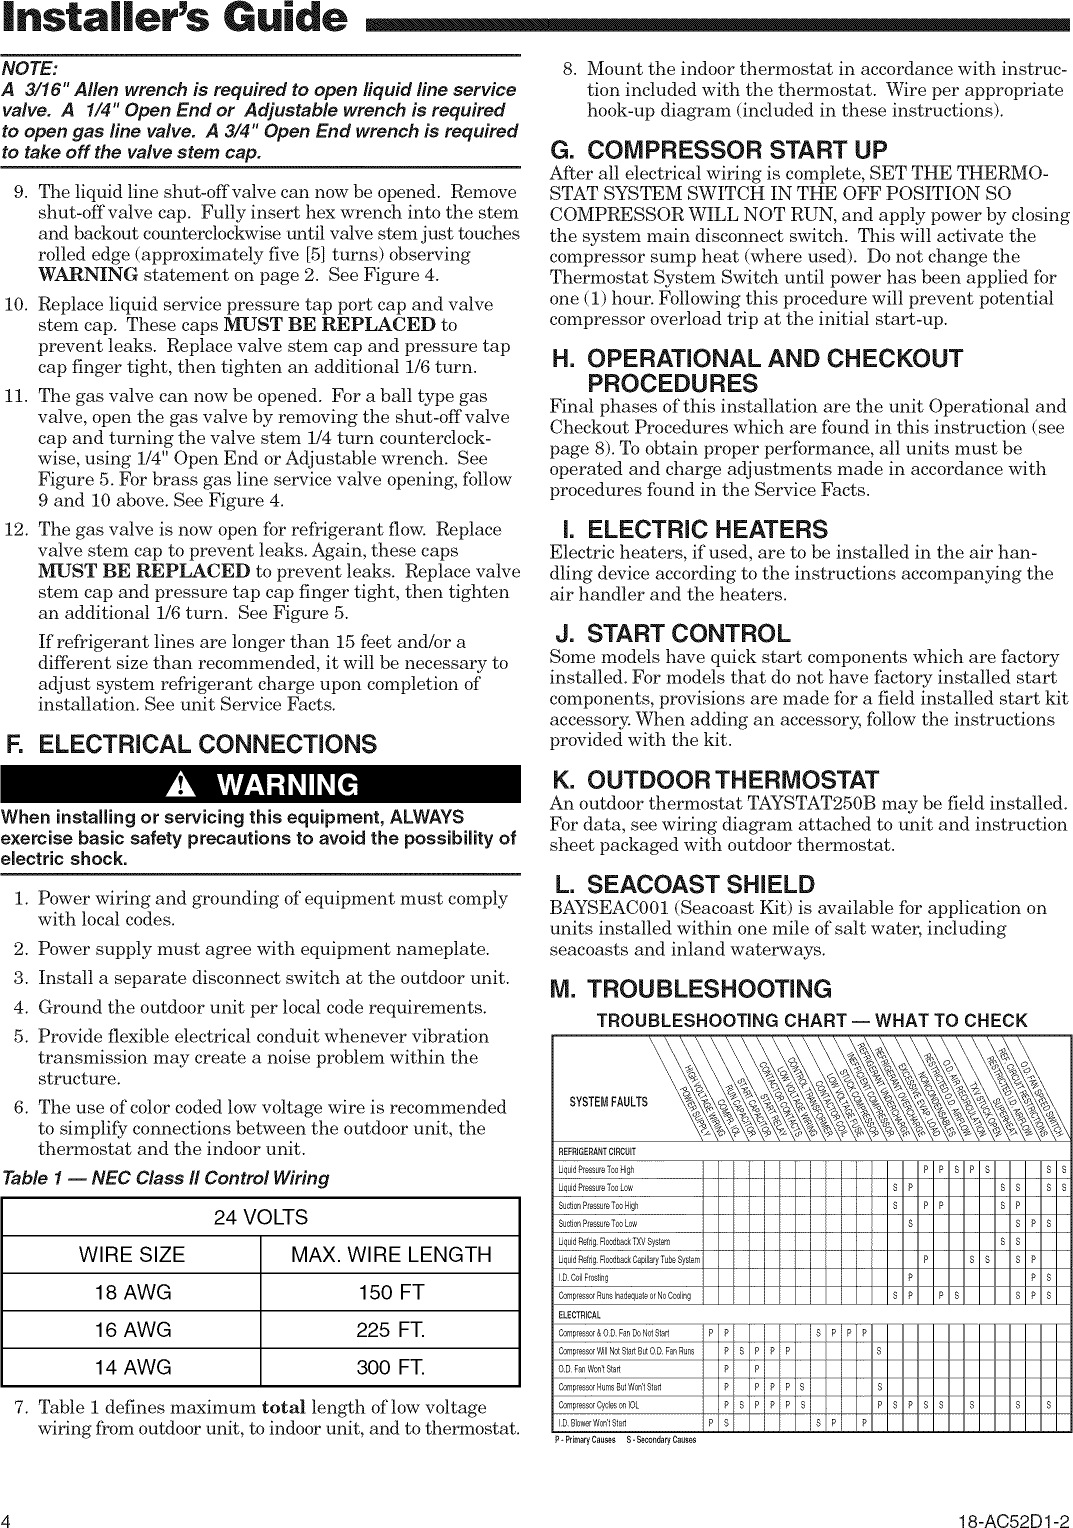 Txv troubleshooting chart images free troubleshooting examples feeler gauge conversion chart image collections free any chart txv troubleshooting gallery free troubleshooting examples thermostat nvjuhfo Images